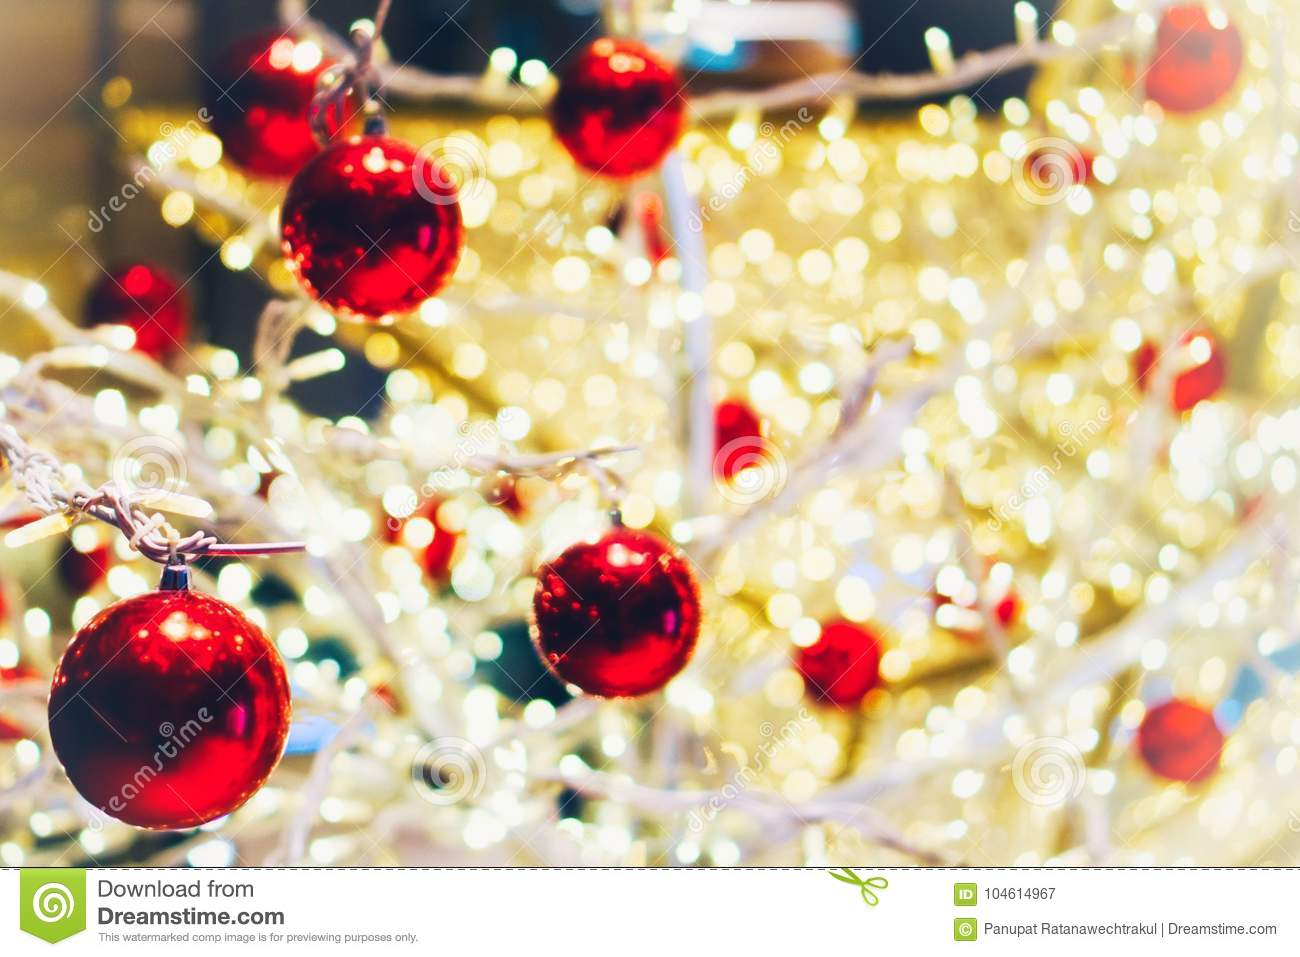 Christmas Wallpaper And New Year Festival Stock Image